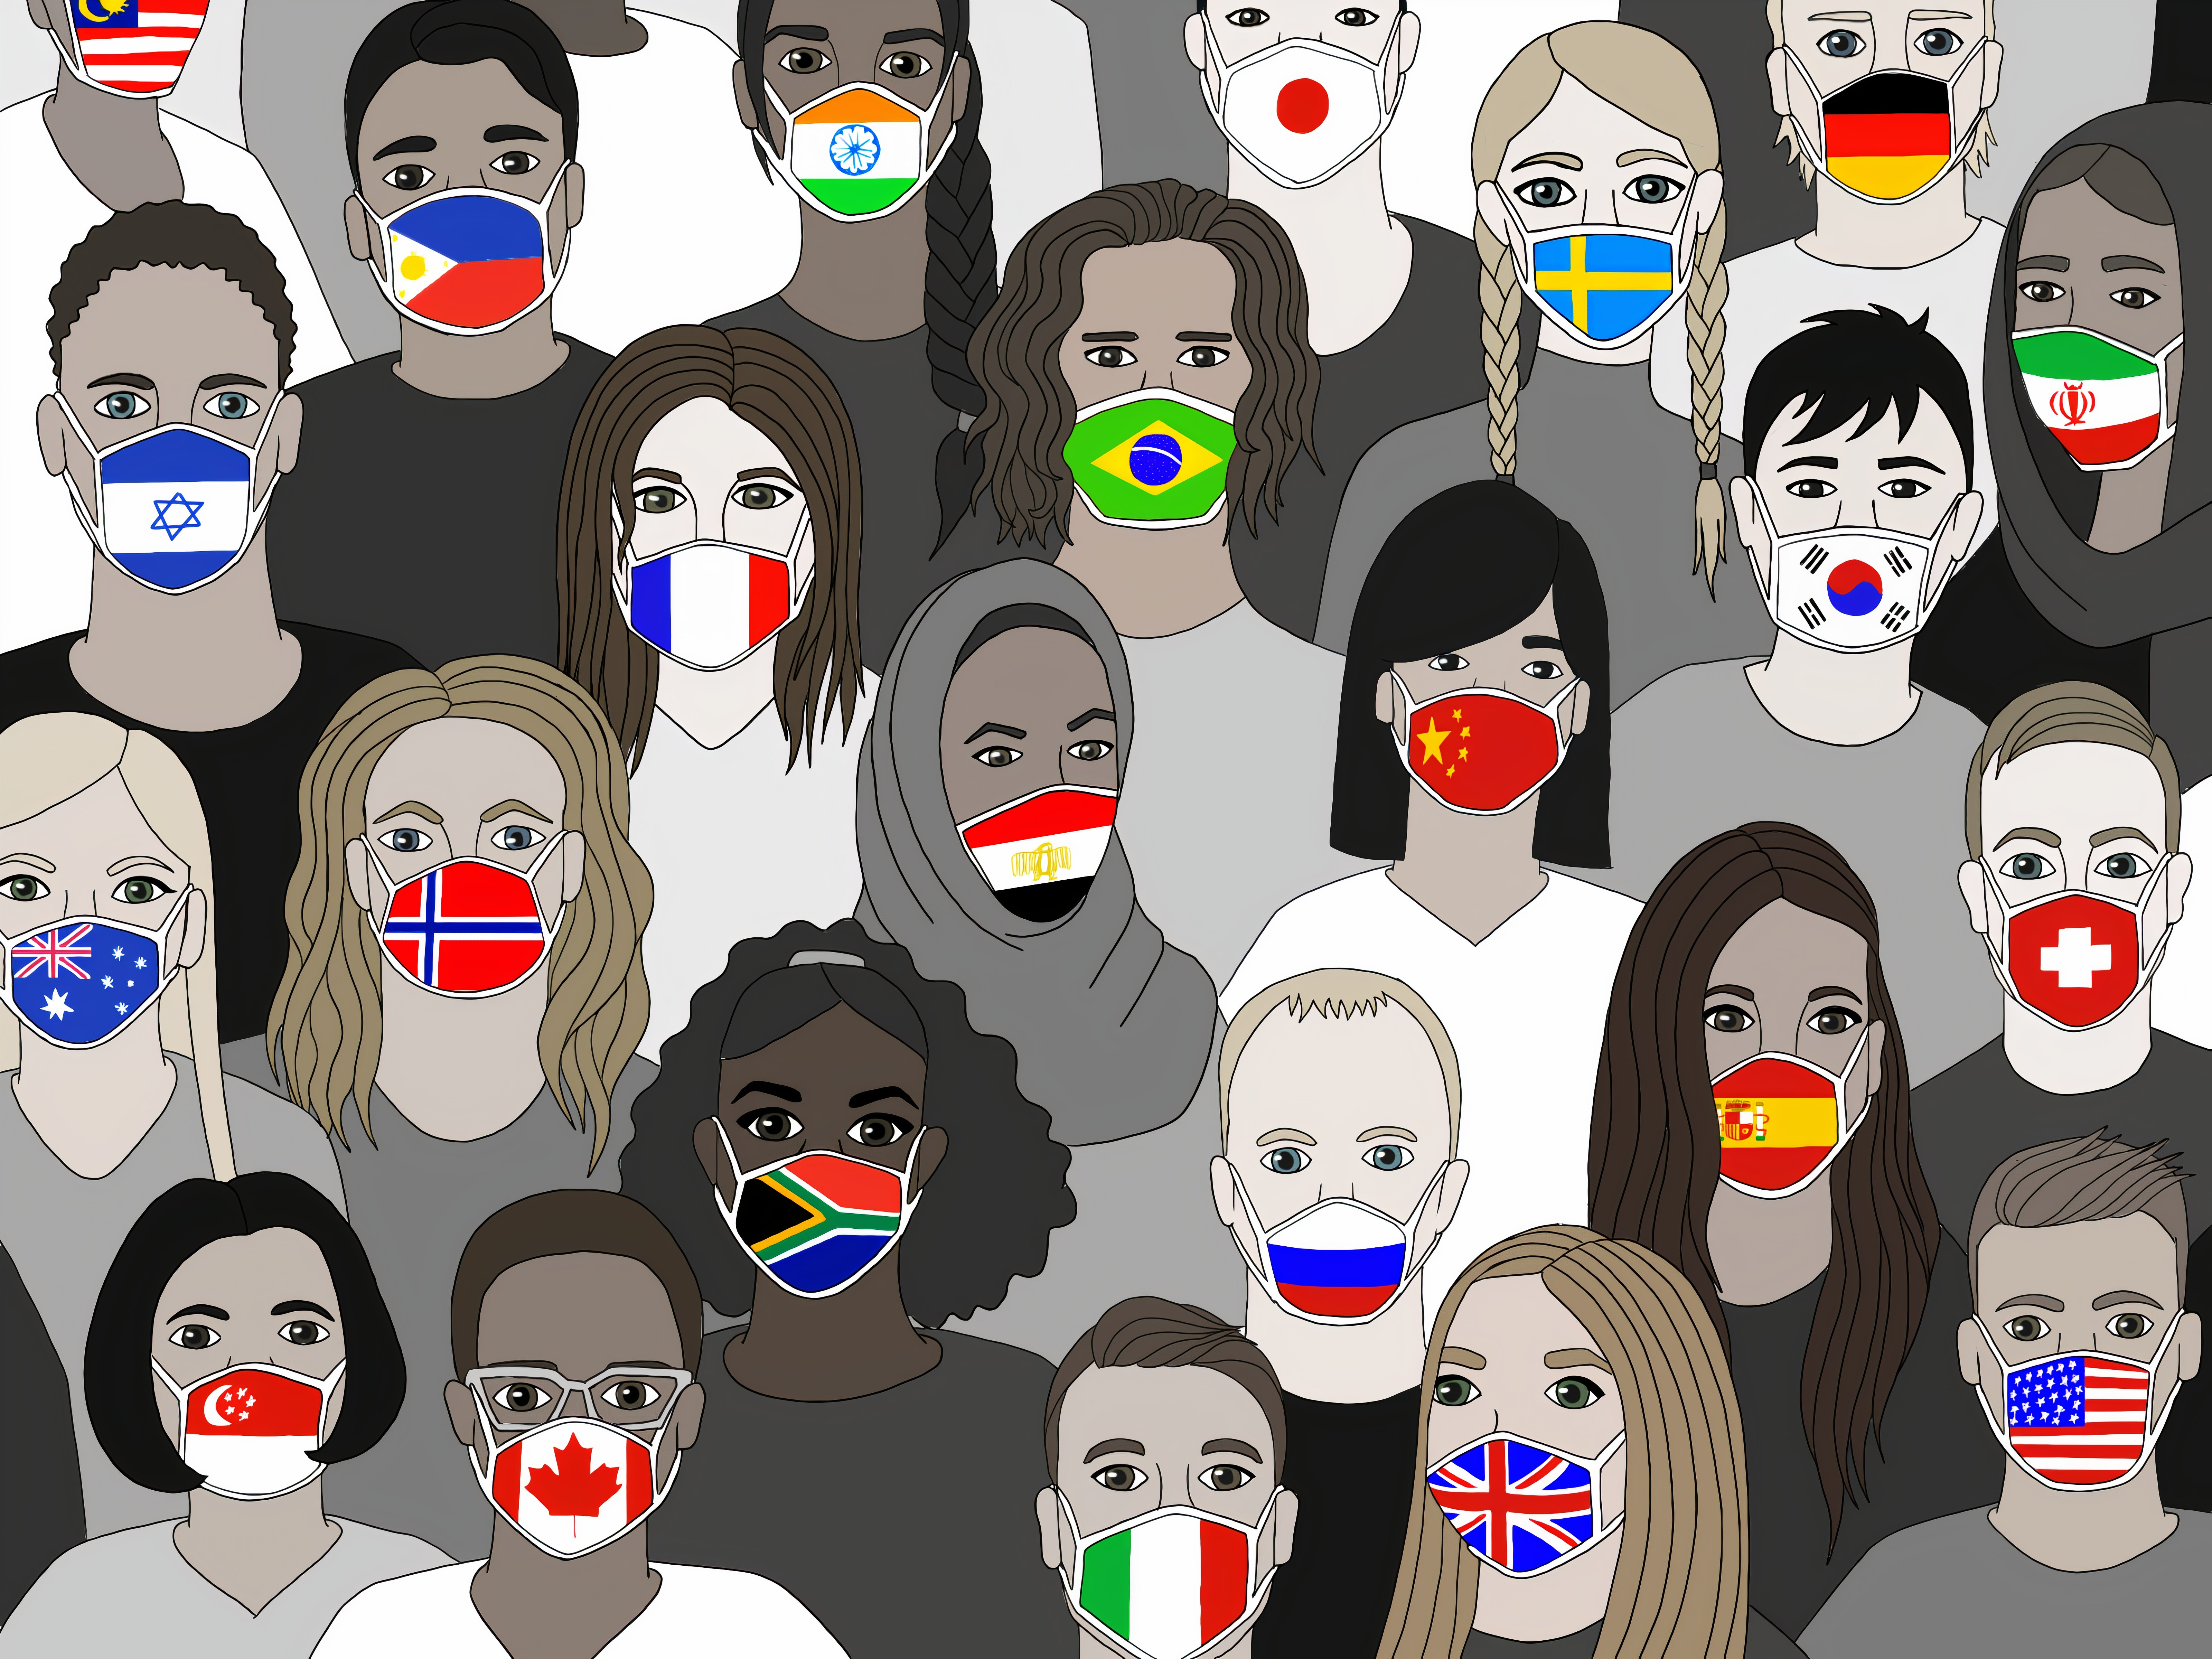 Illustration of people wearing masks featuring flags from nations around the world.